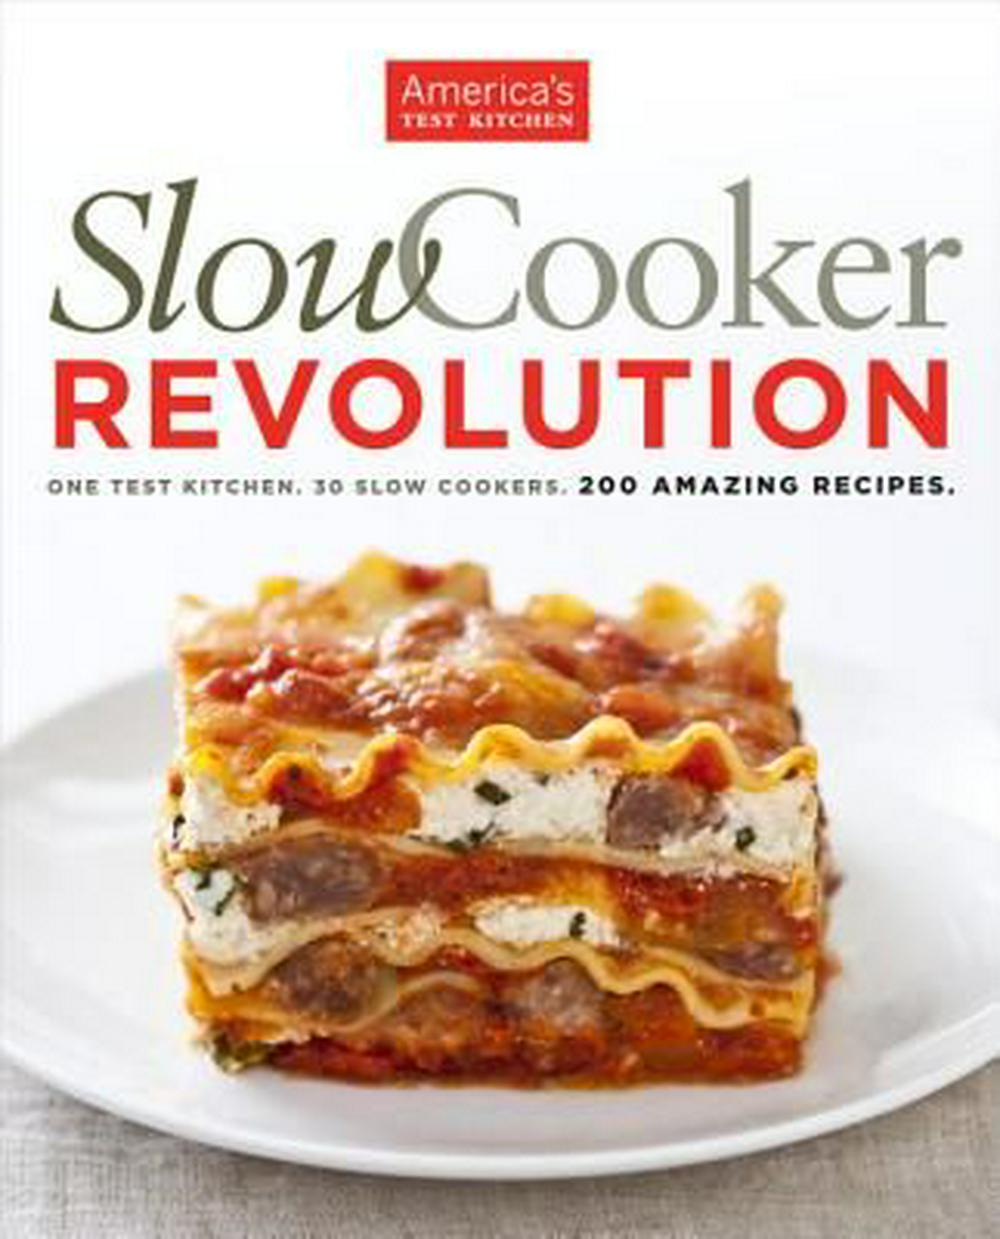 Slow Cooker Revolution by Editors at America's Test Kitchen, ISBN: 9781933615691